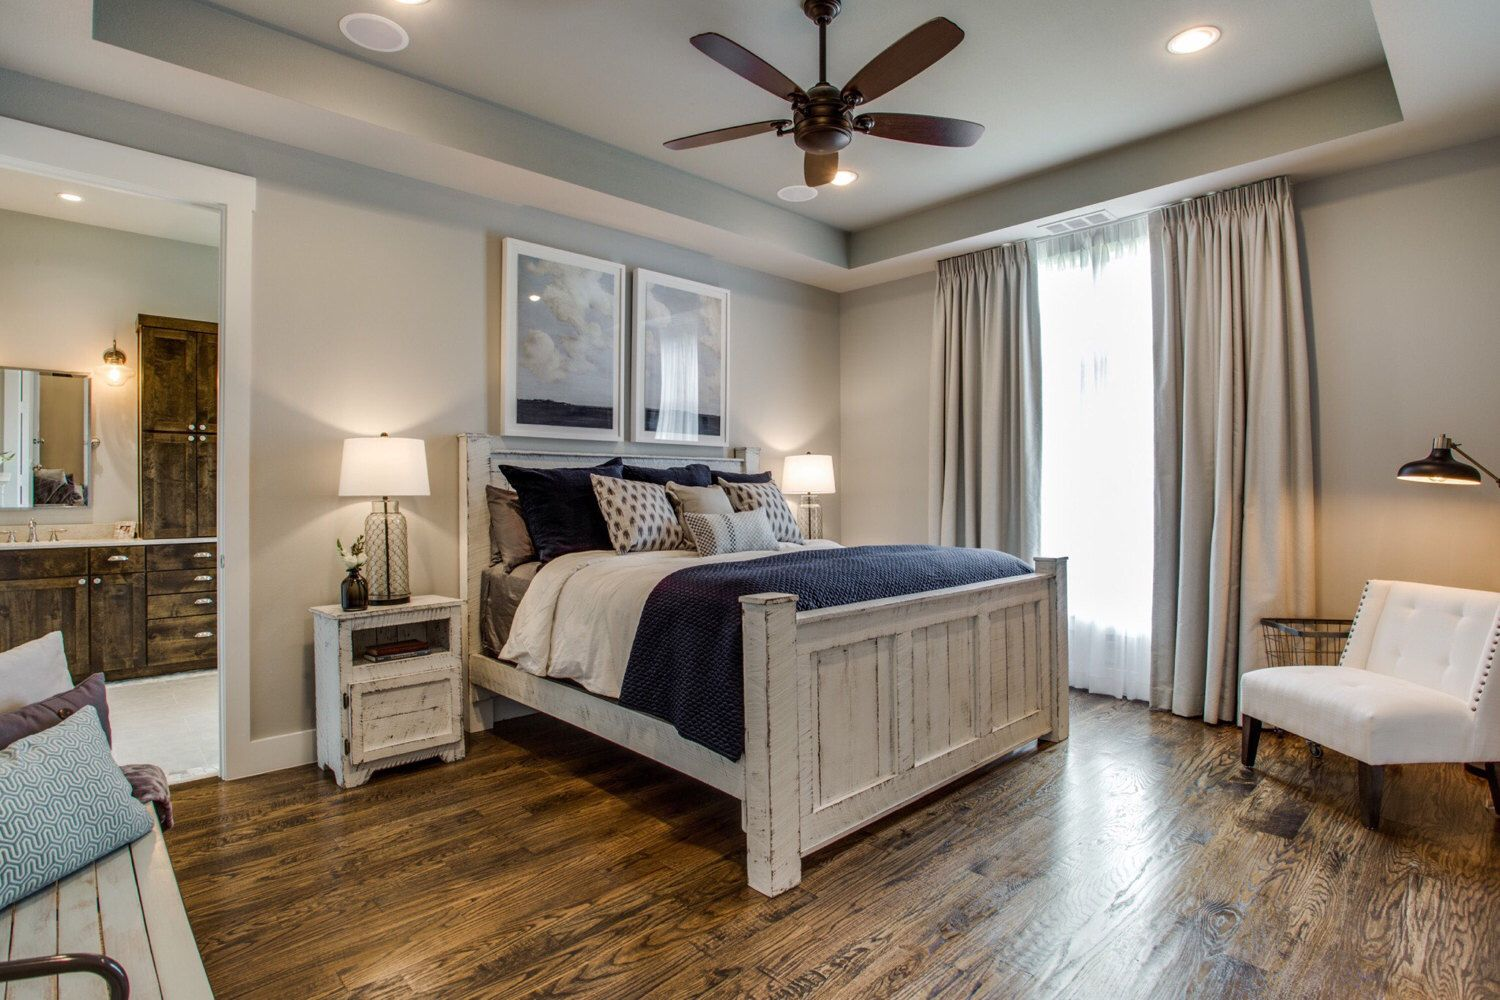 White reclaimed wood bed frame/bedroom furniture